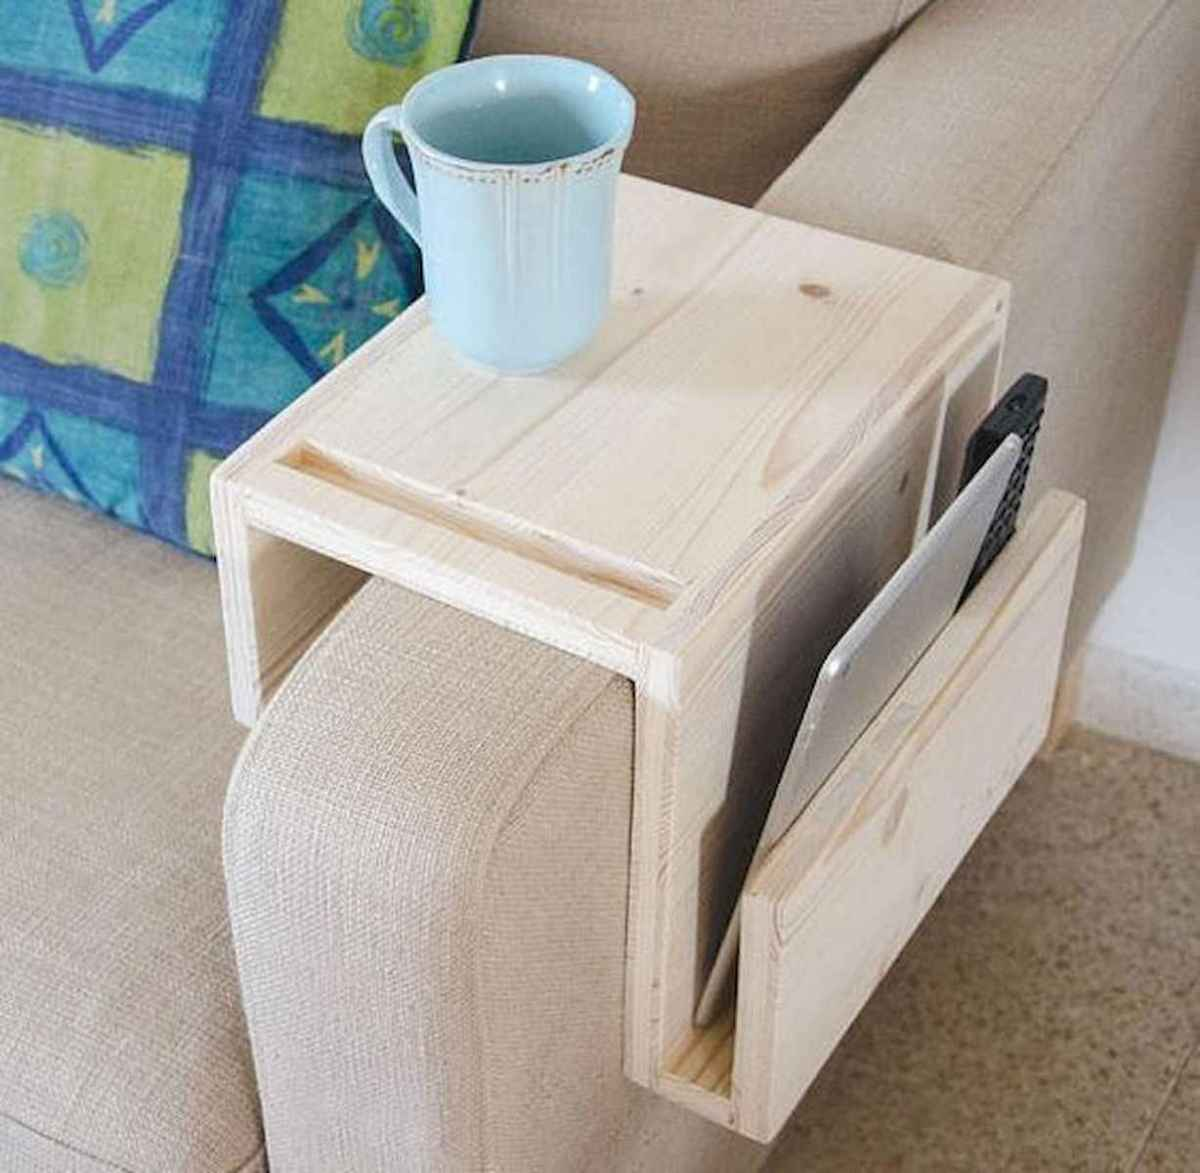 70 Suprising DIY Projects Mini Pallet Coffee Table Design Ideas (16)